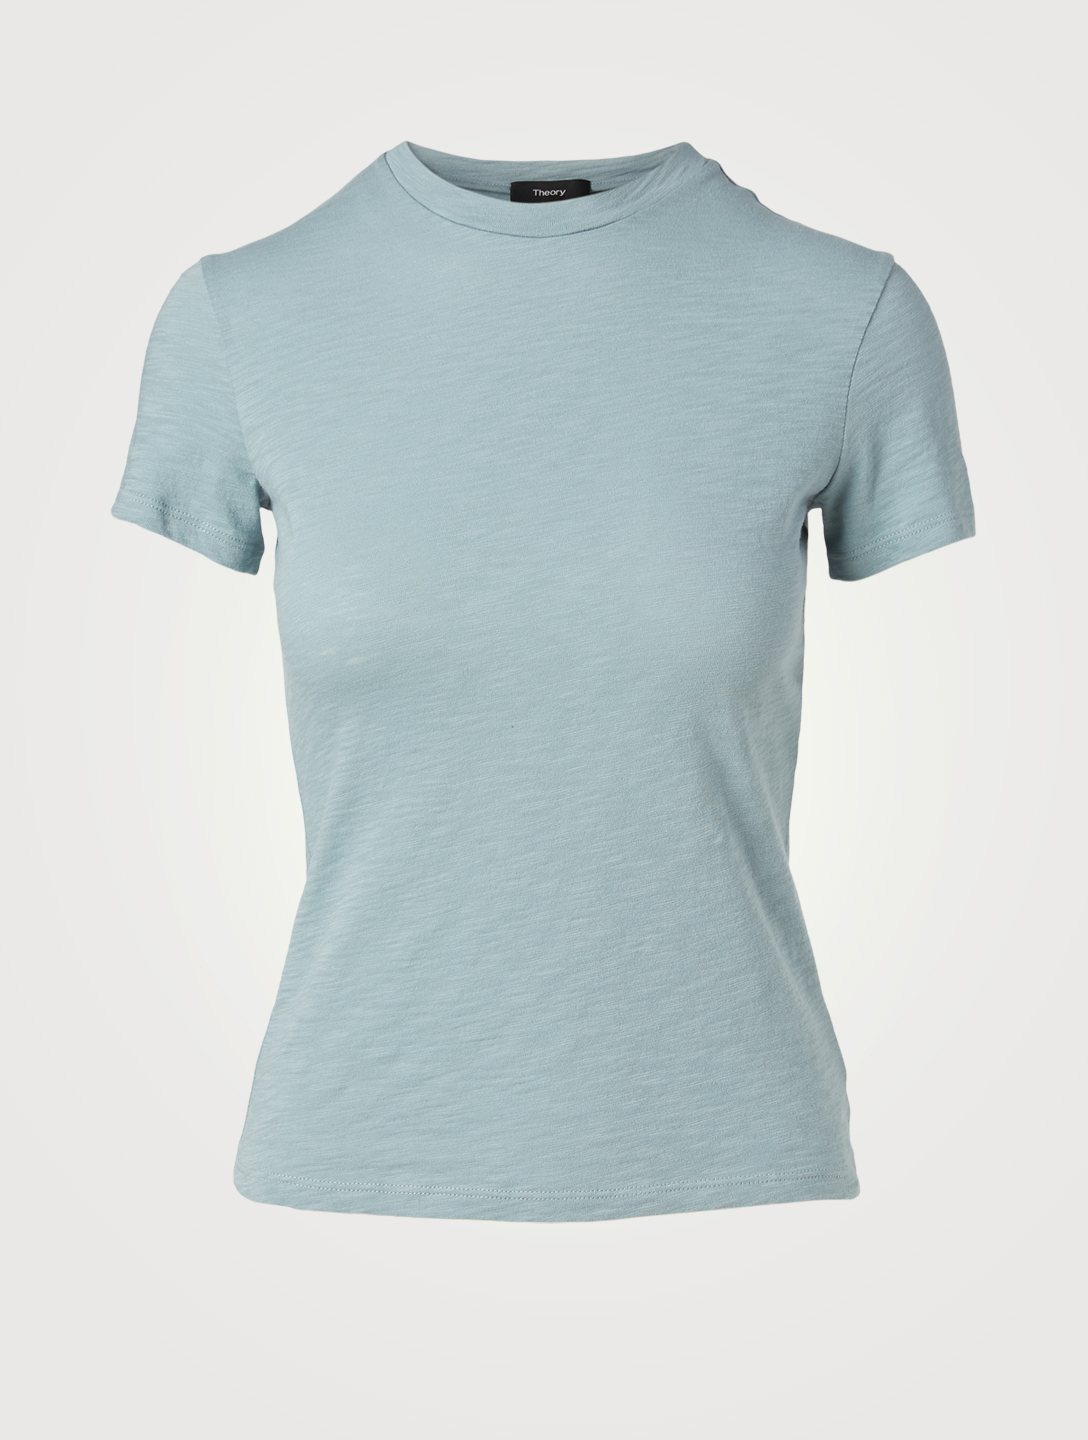 THEORY Tiny Organic Cotton T-Shirt Women's Blue